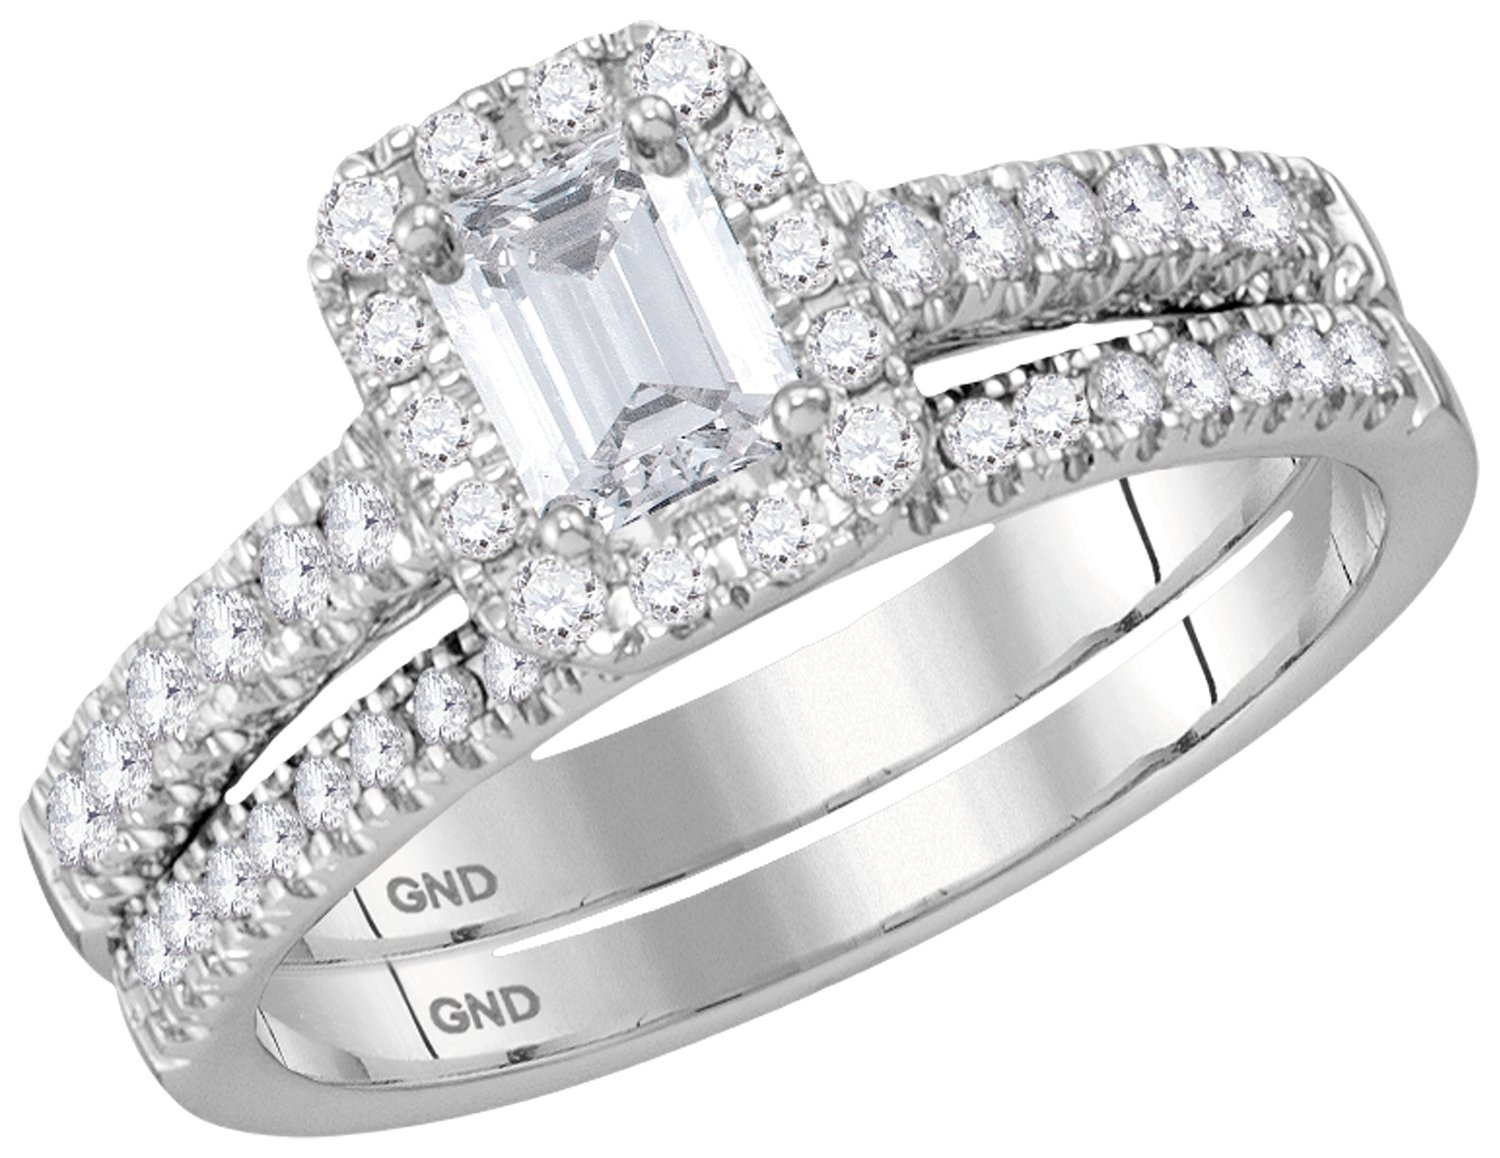 Bridal Collection diamond ring 1 ctw. 14kt - 1/2 ct. center stone 117029